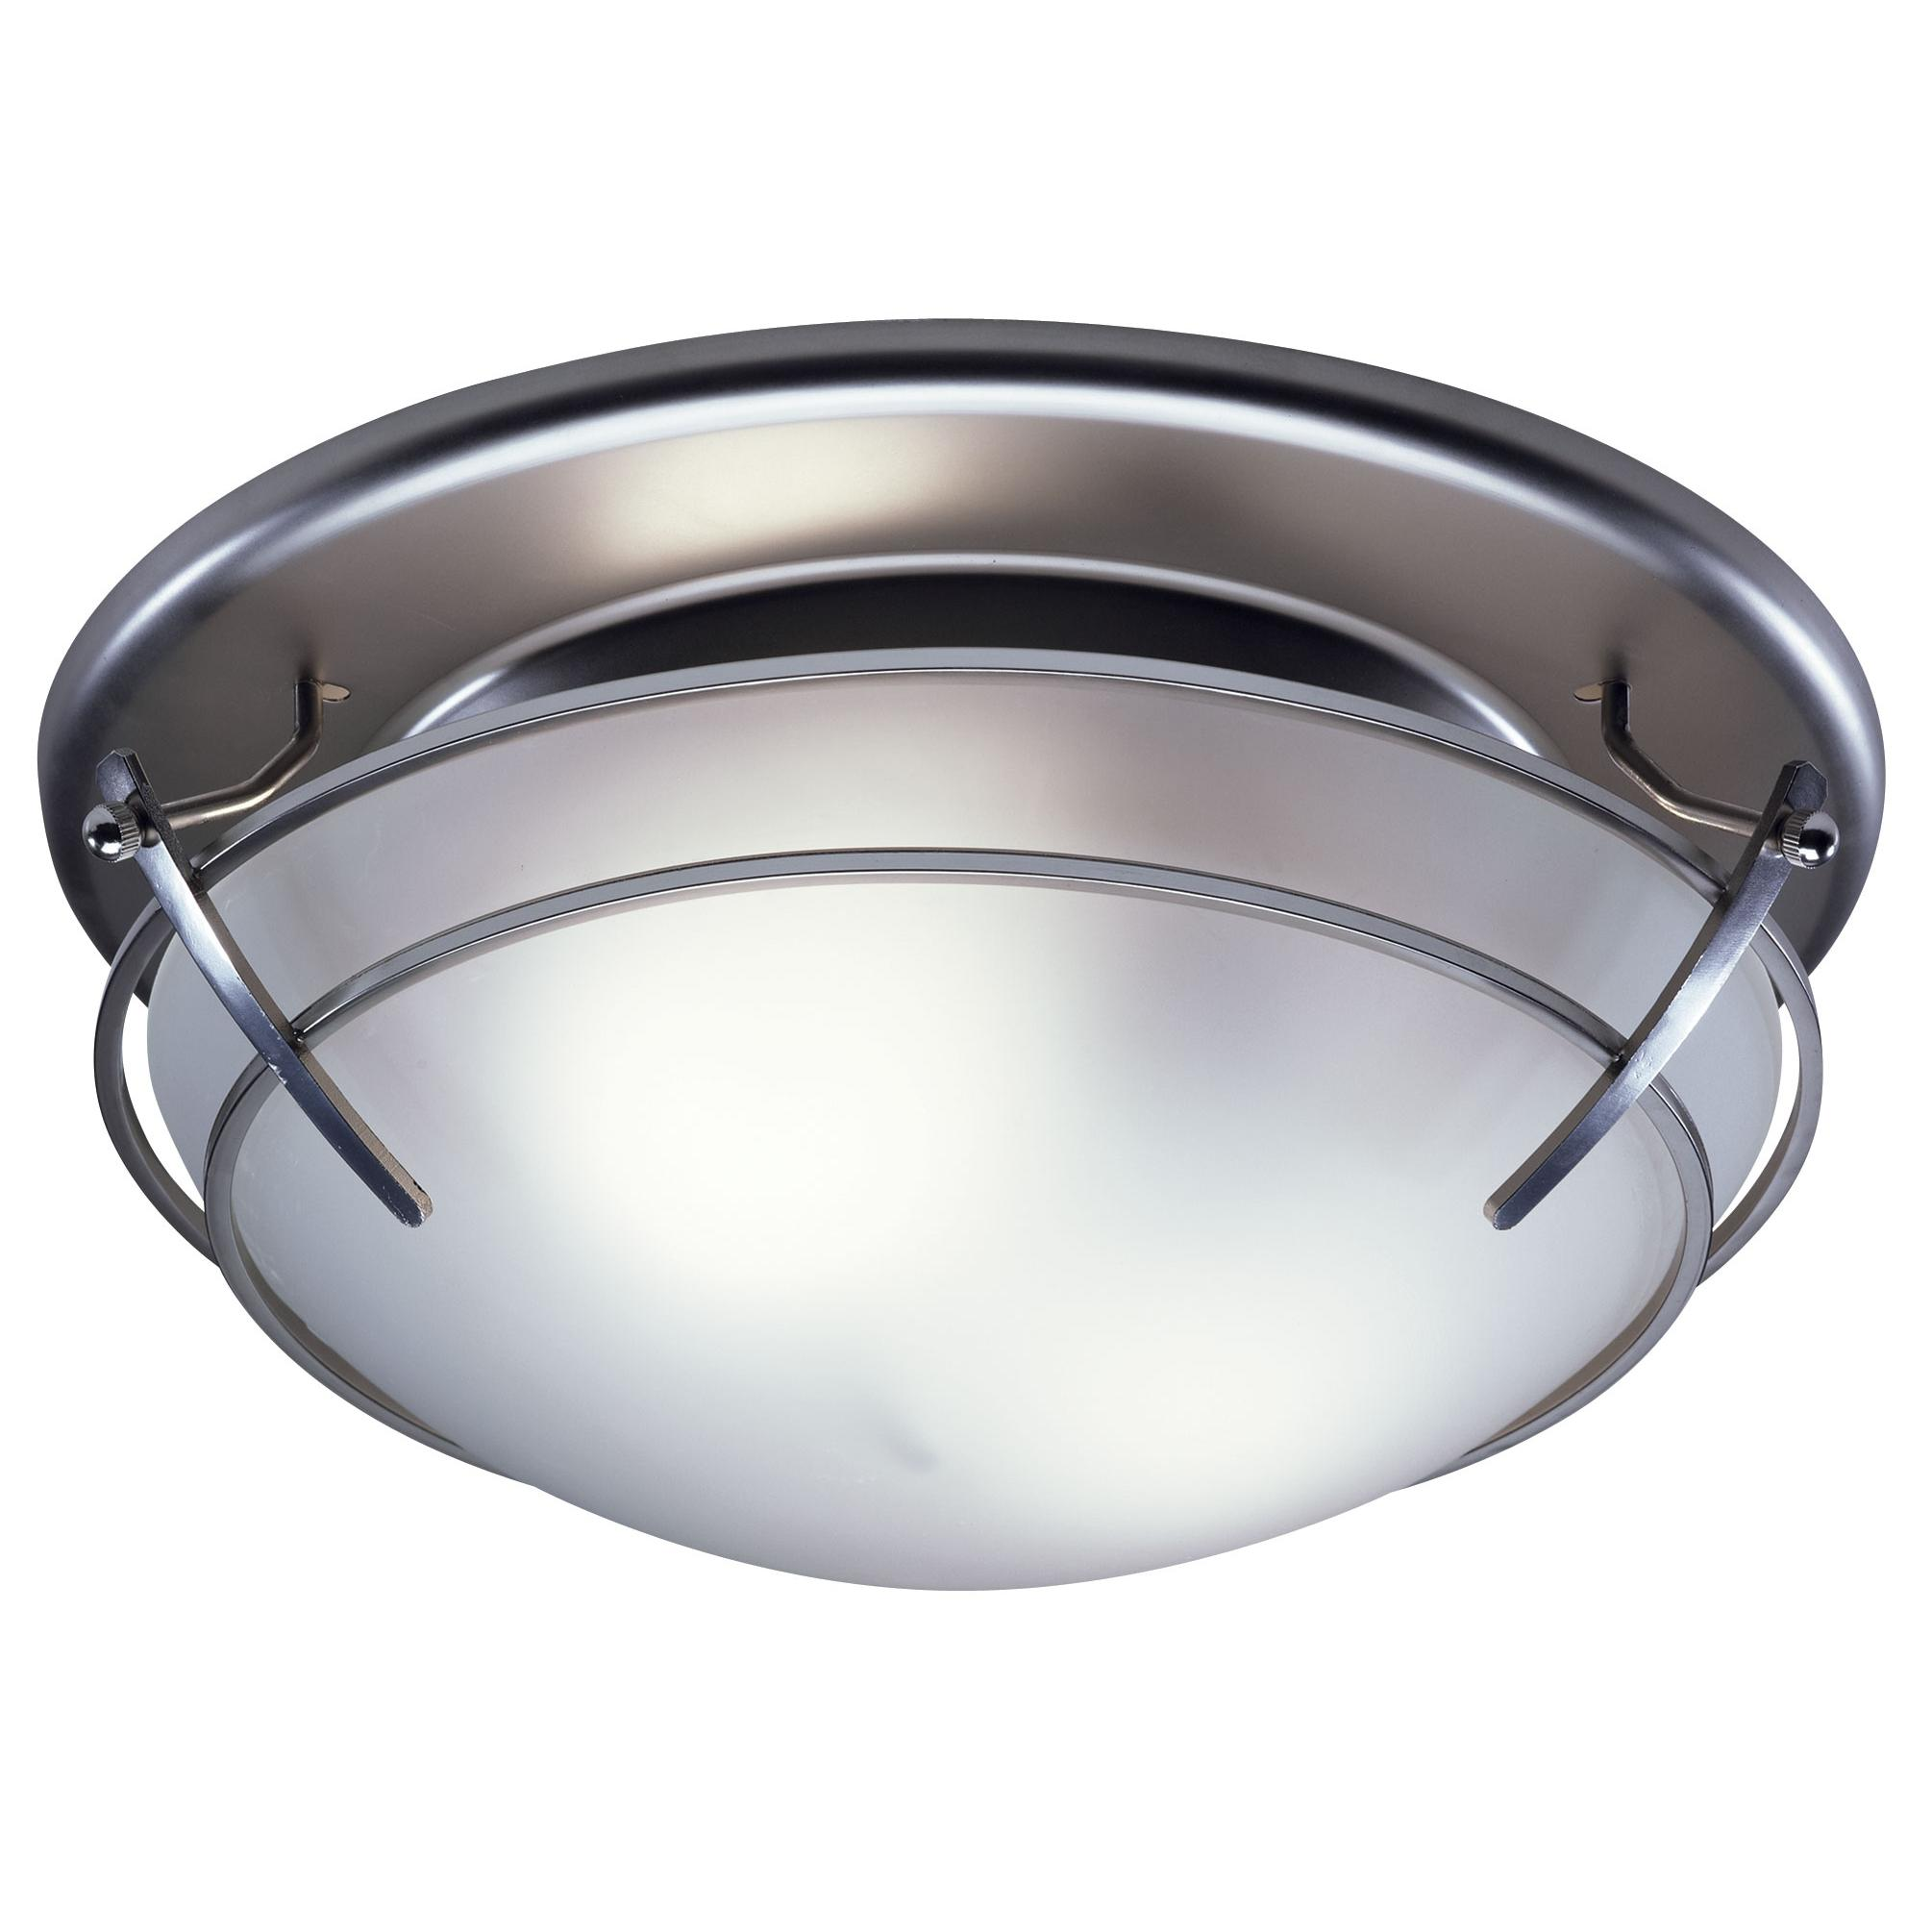 Broan SN Decorative Ventilation Fan And Light CFM Sones - Kitchen and bathroom lights